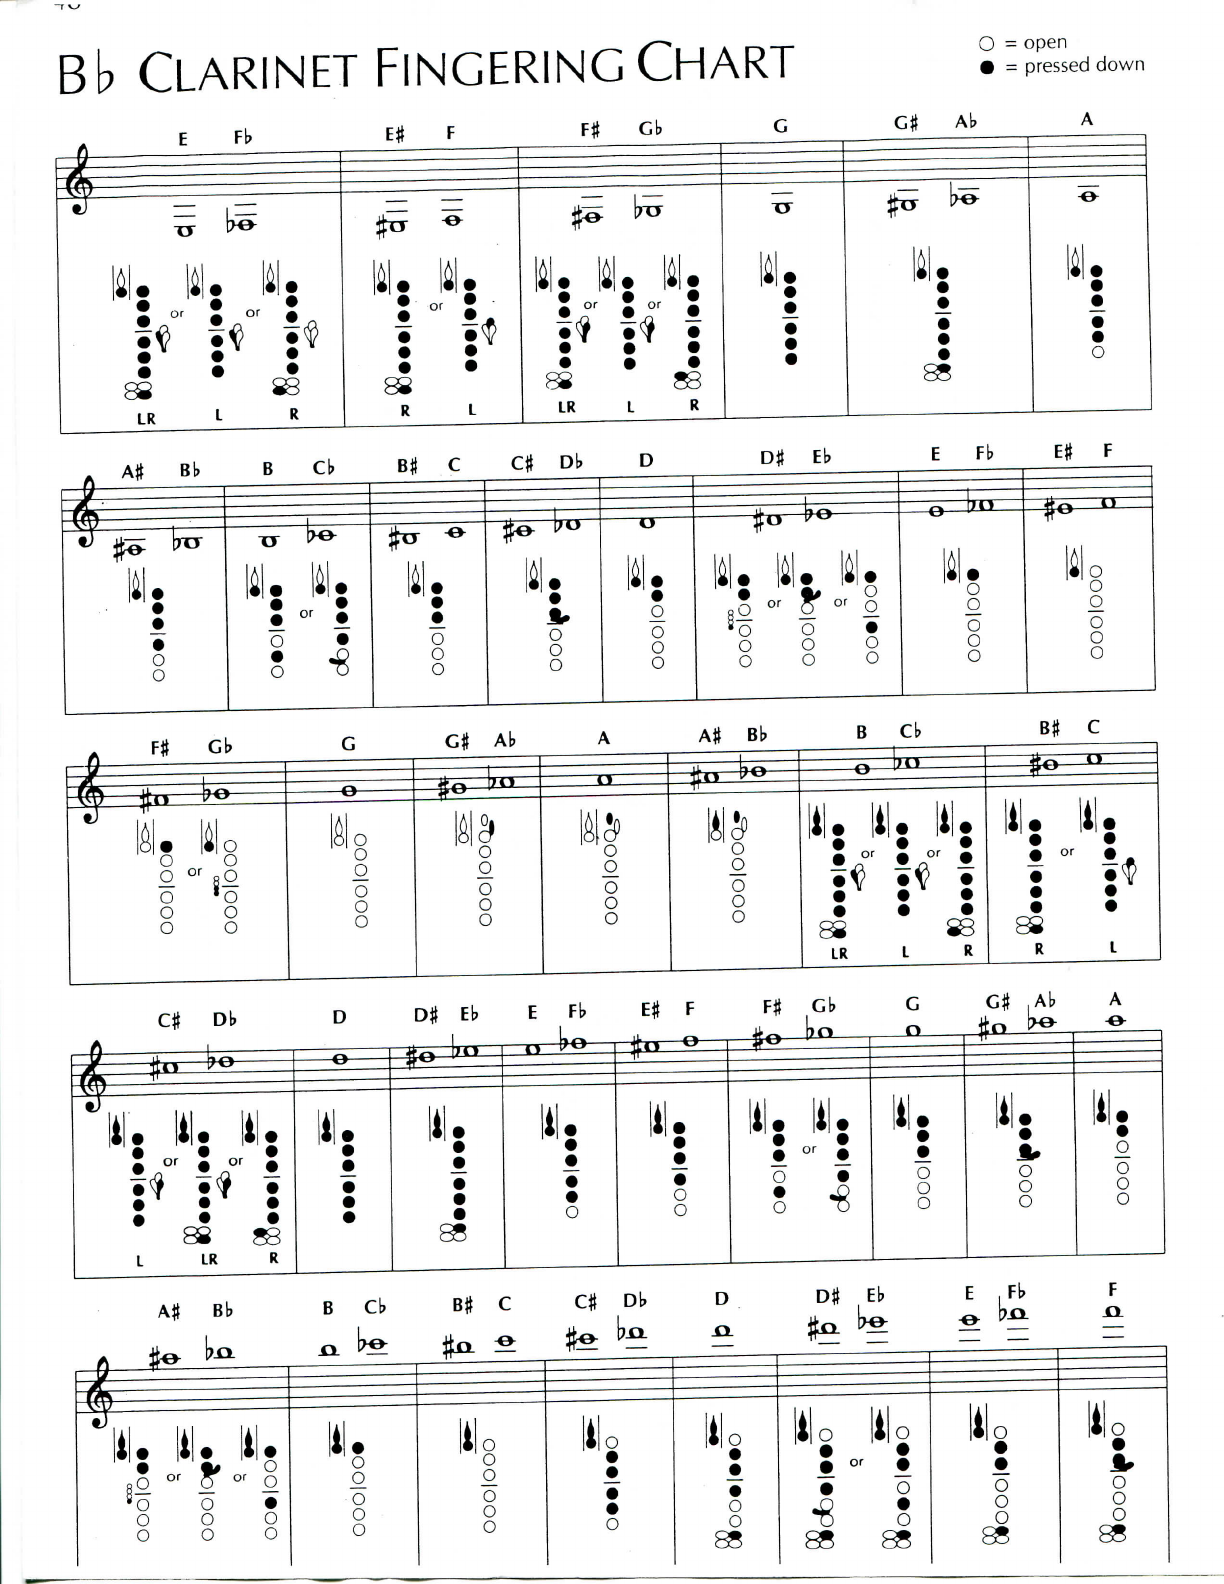 Clarinet Fingering Charts  The Woodwind Fingering Guide